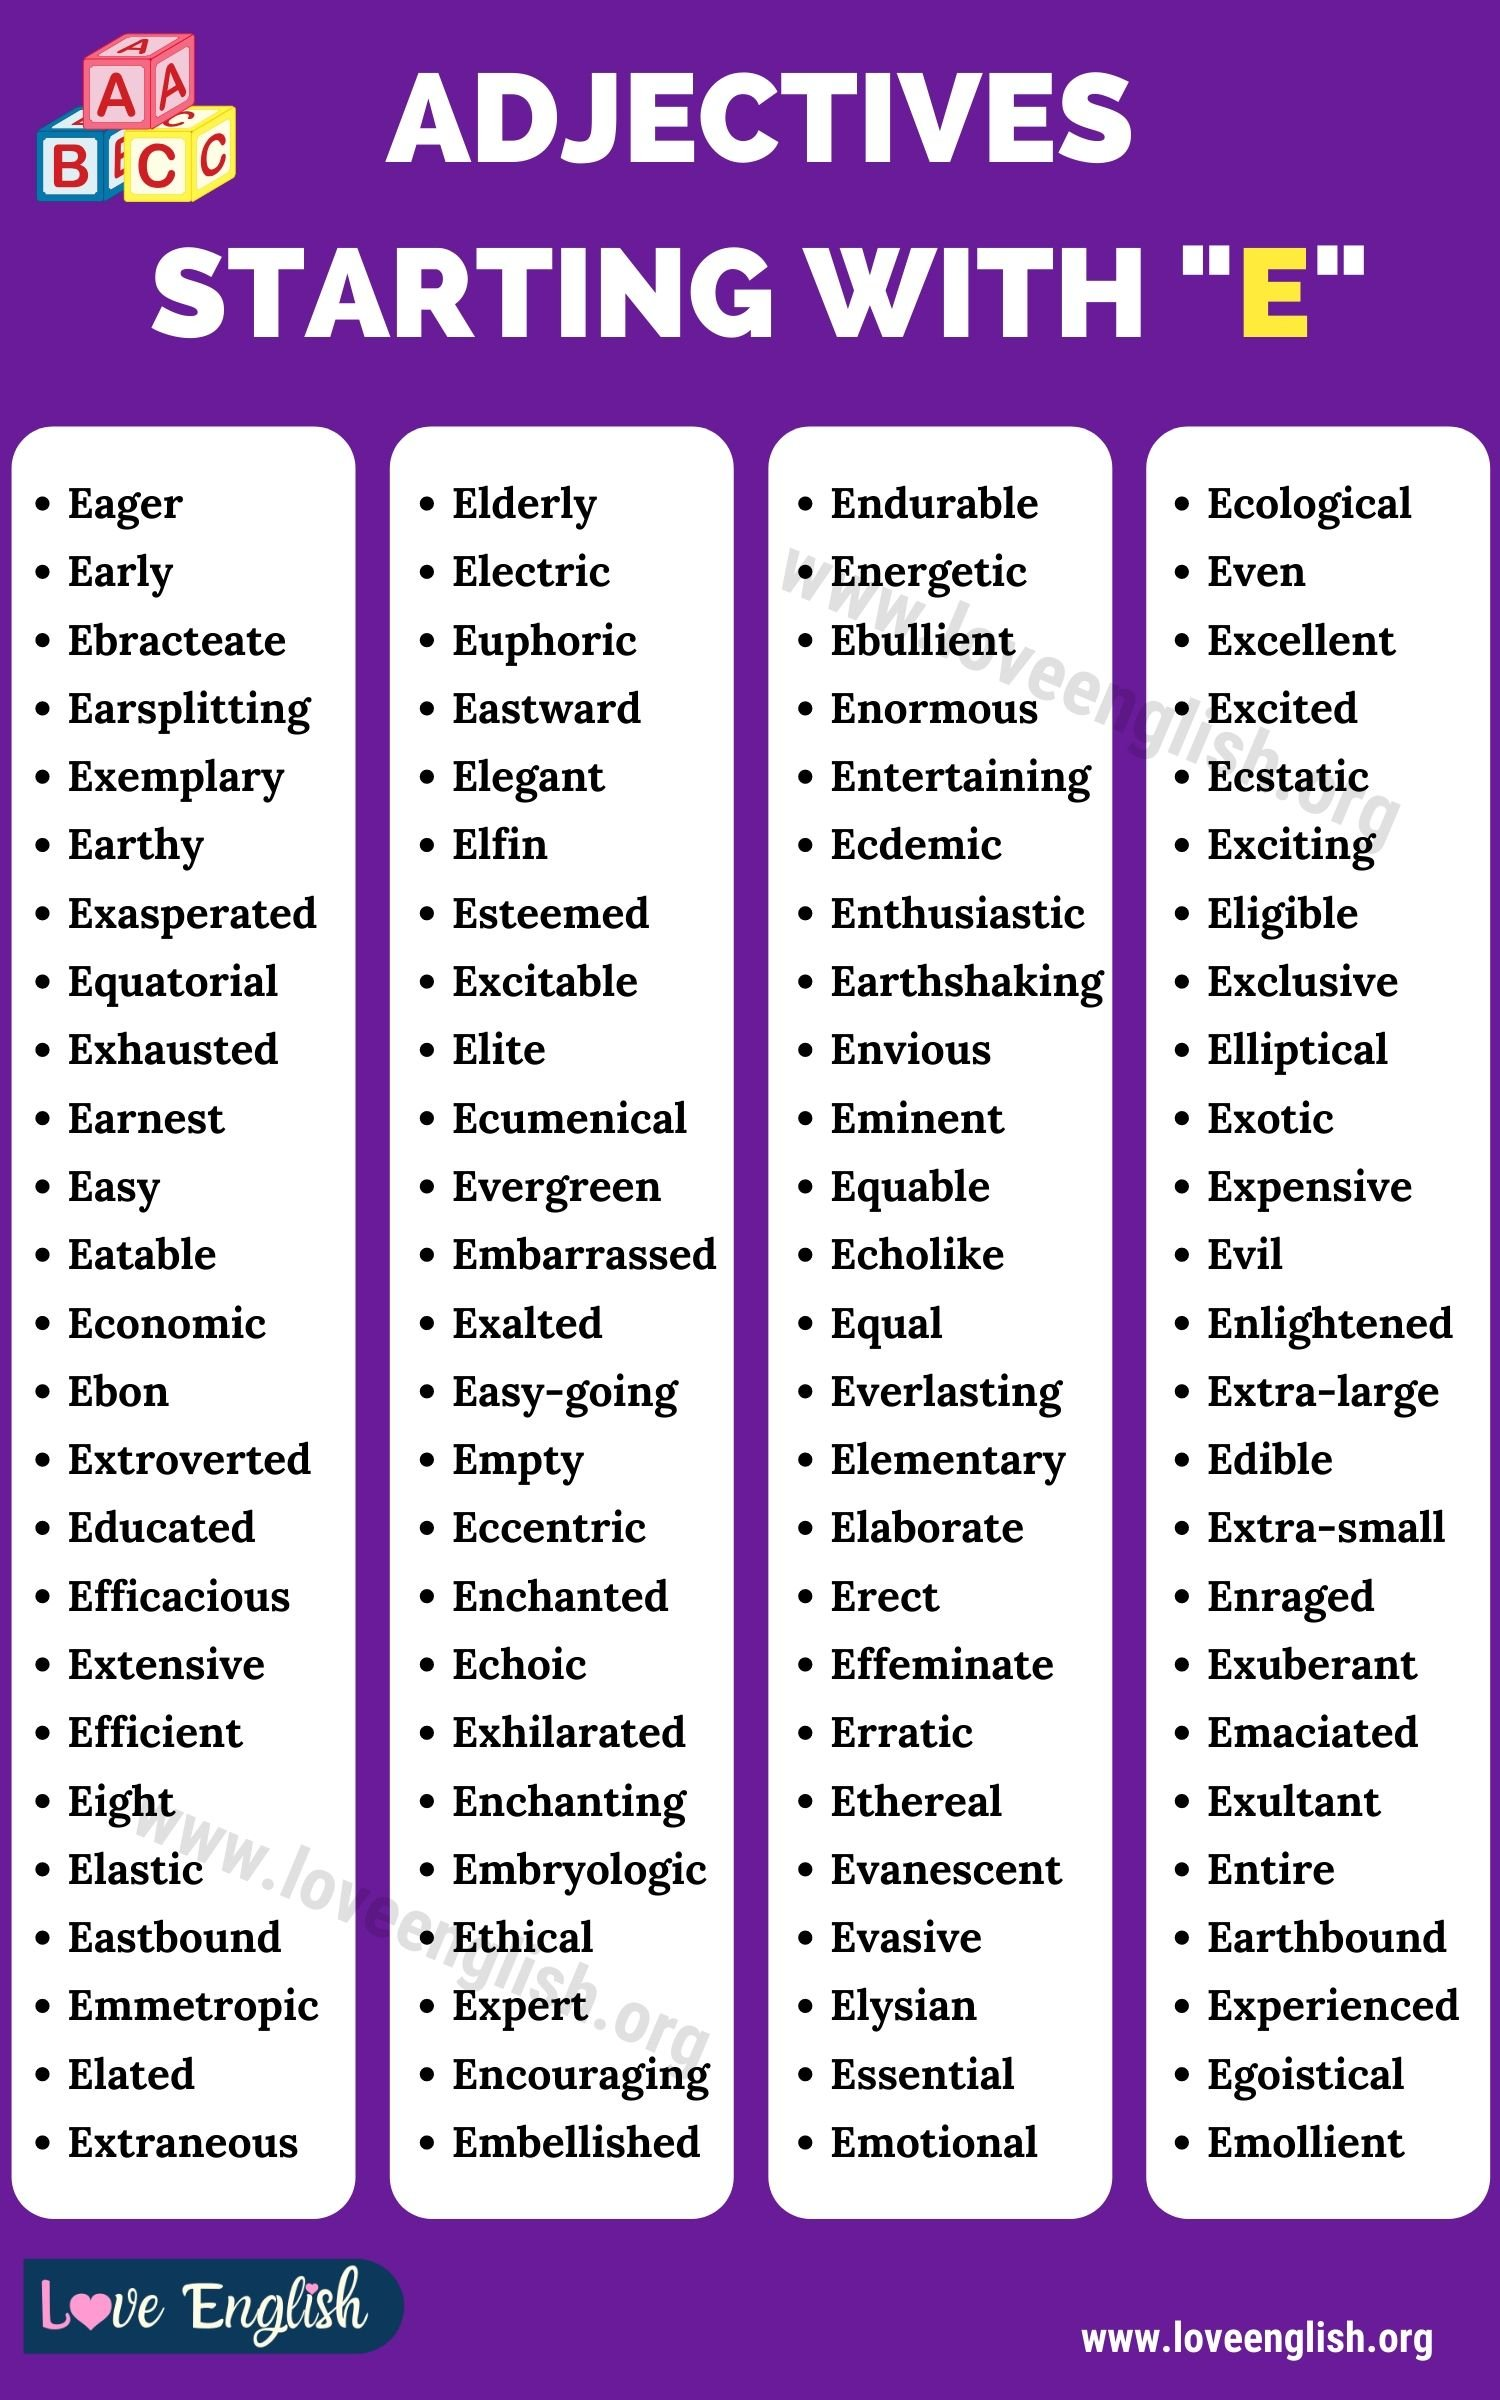 Adjectives that Start with E